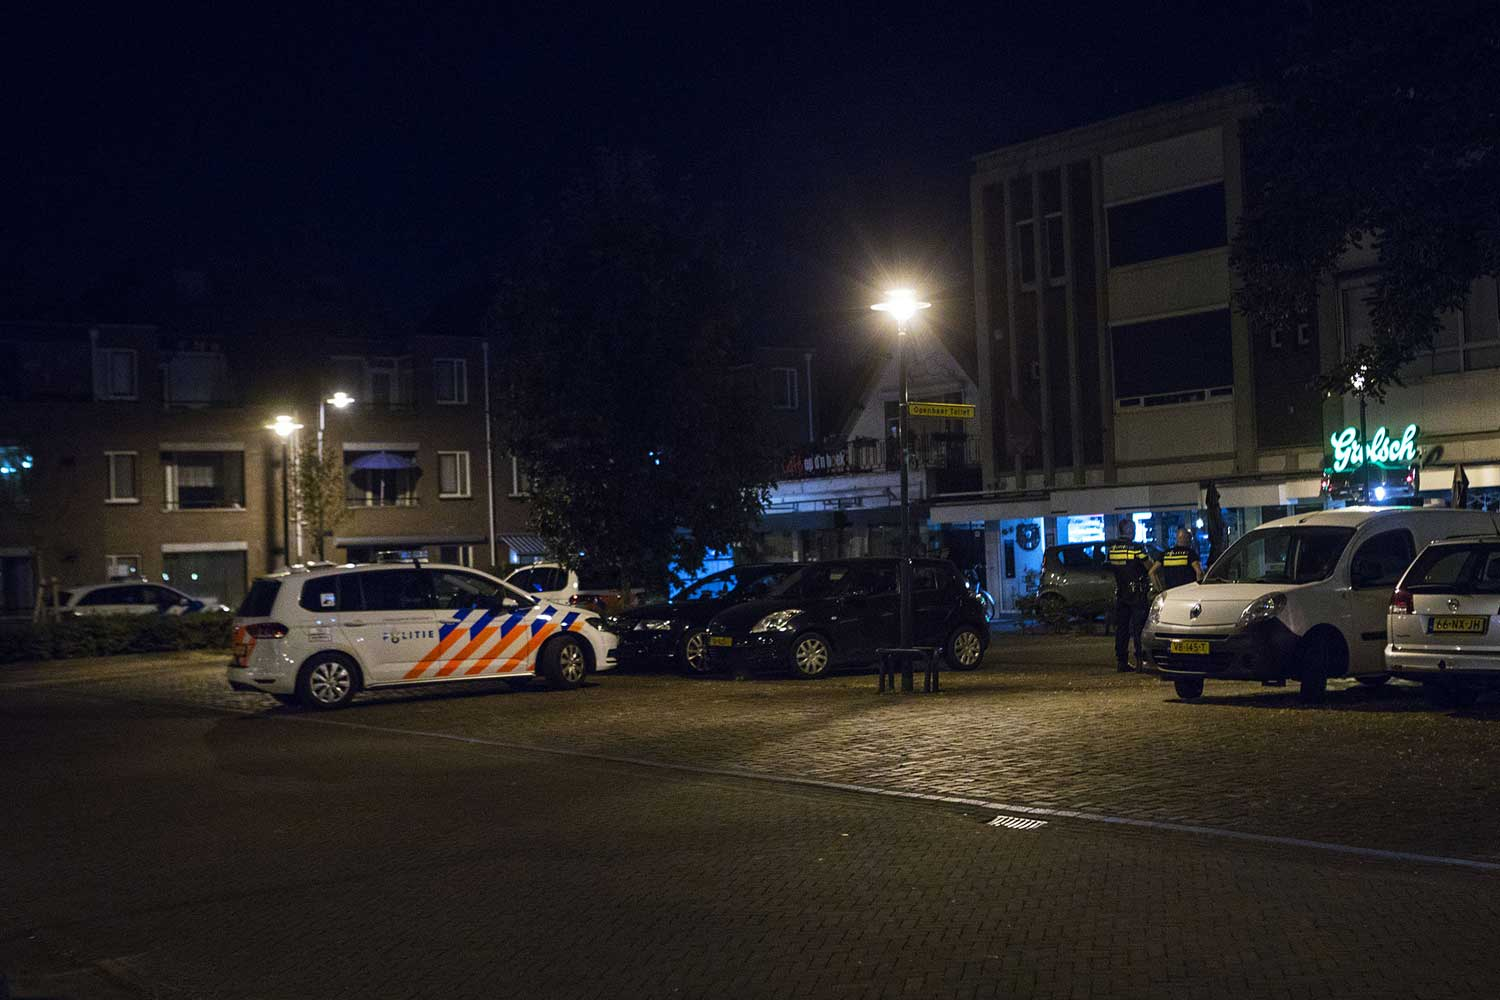 politieauto-cafe-donker